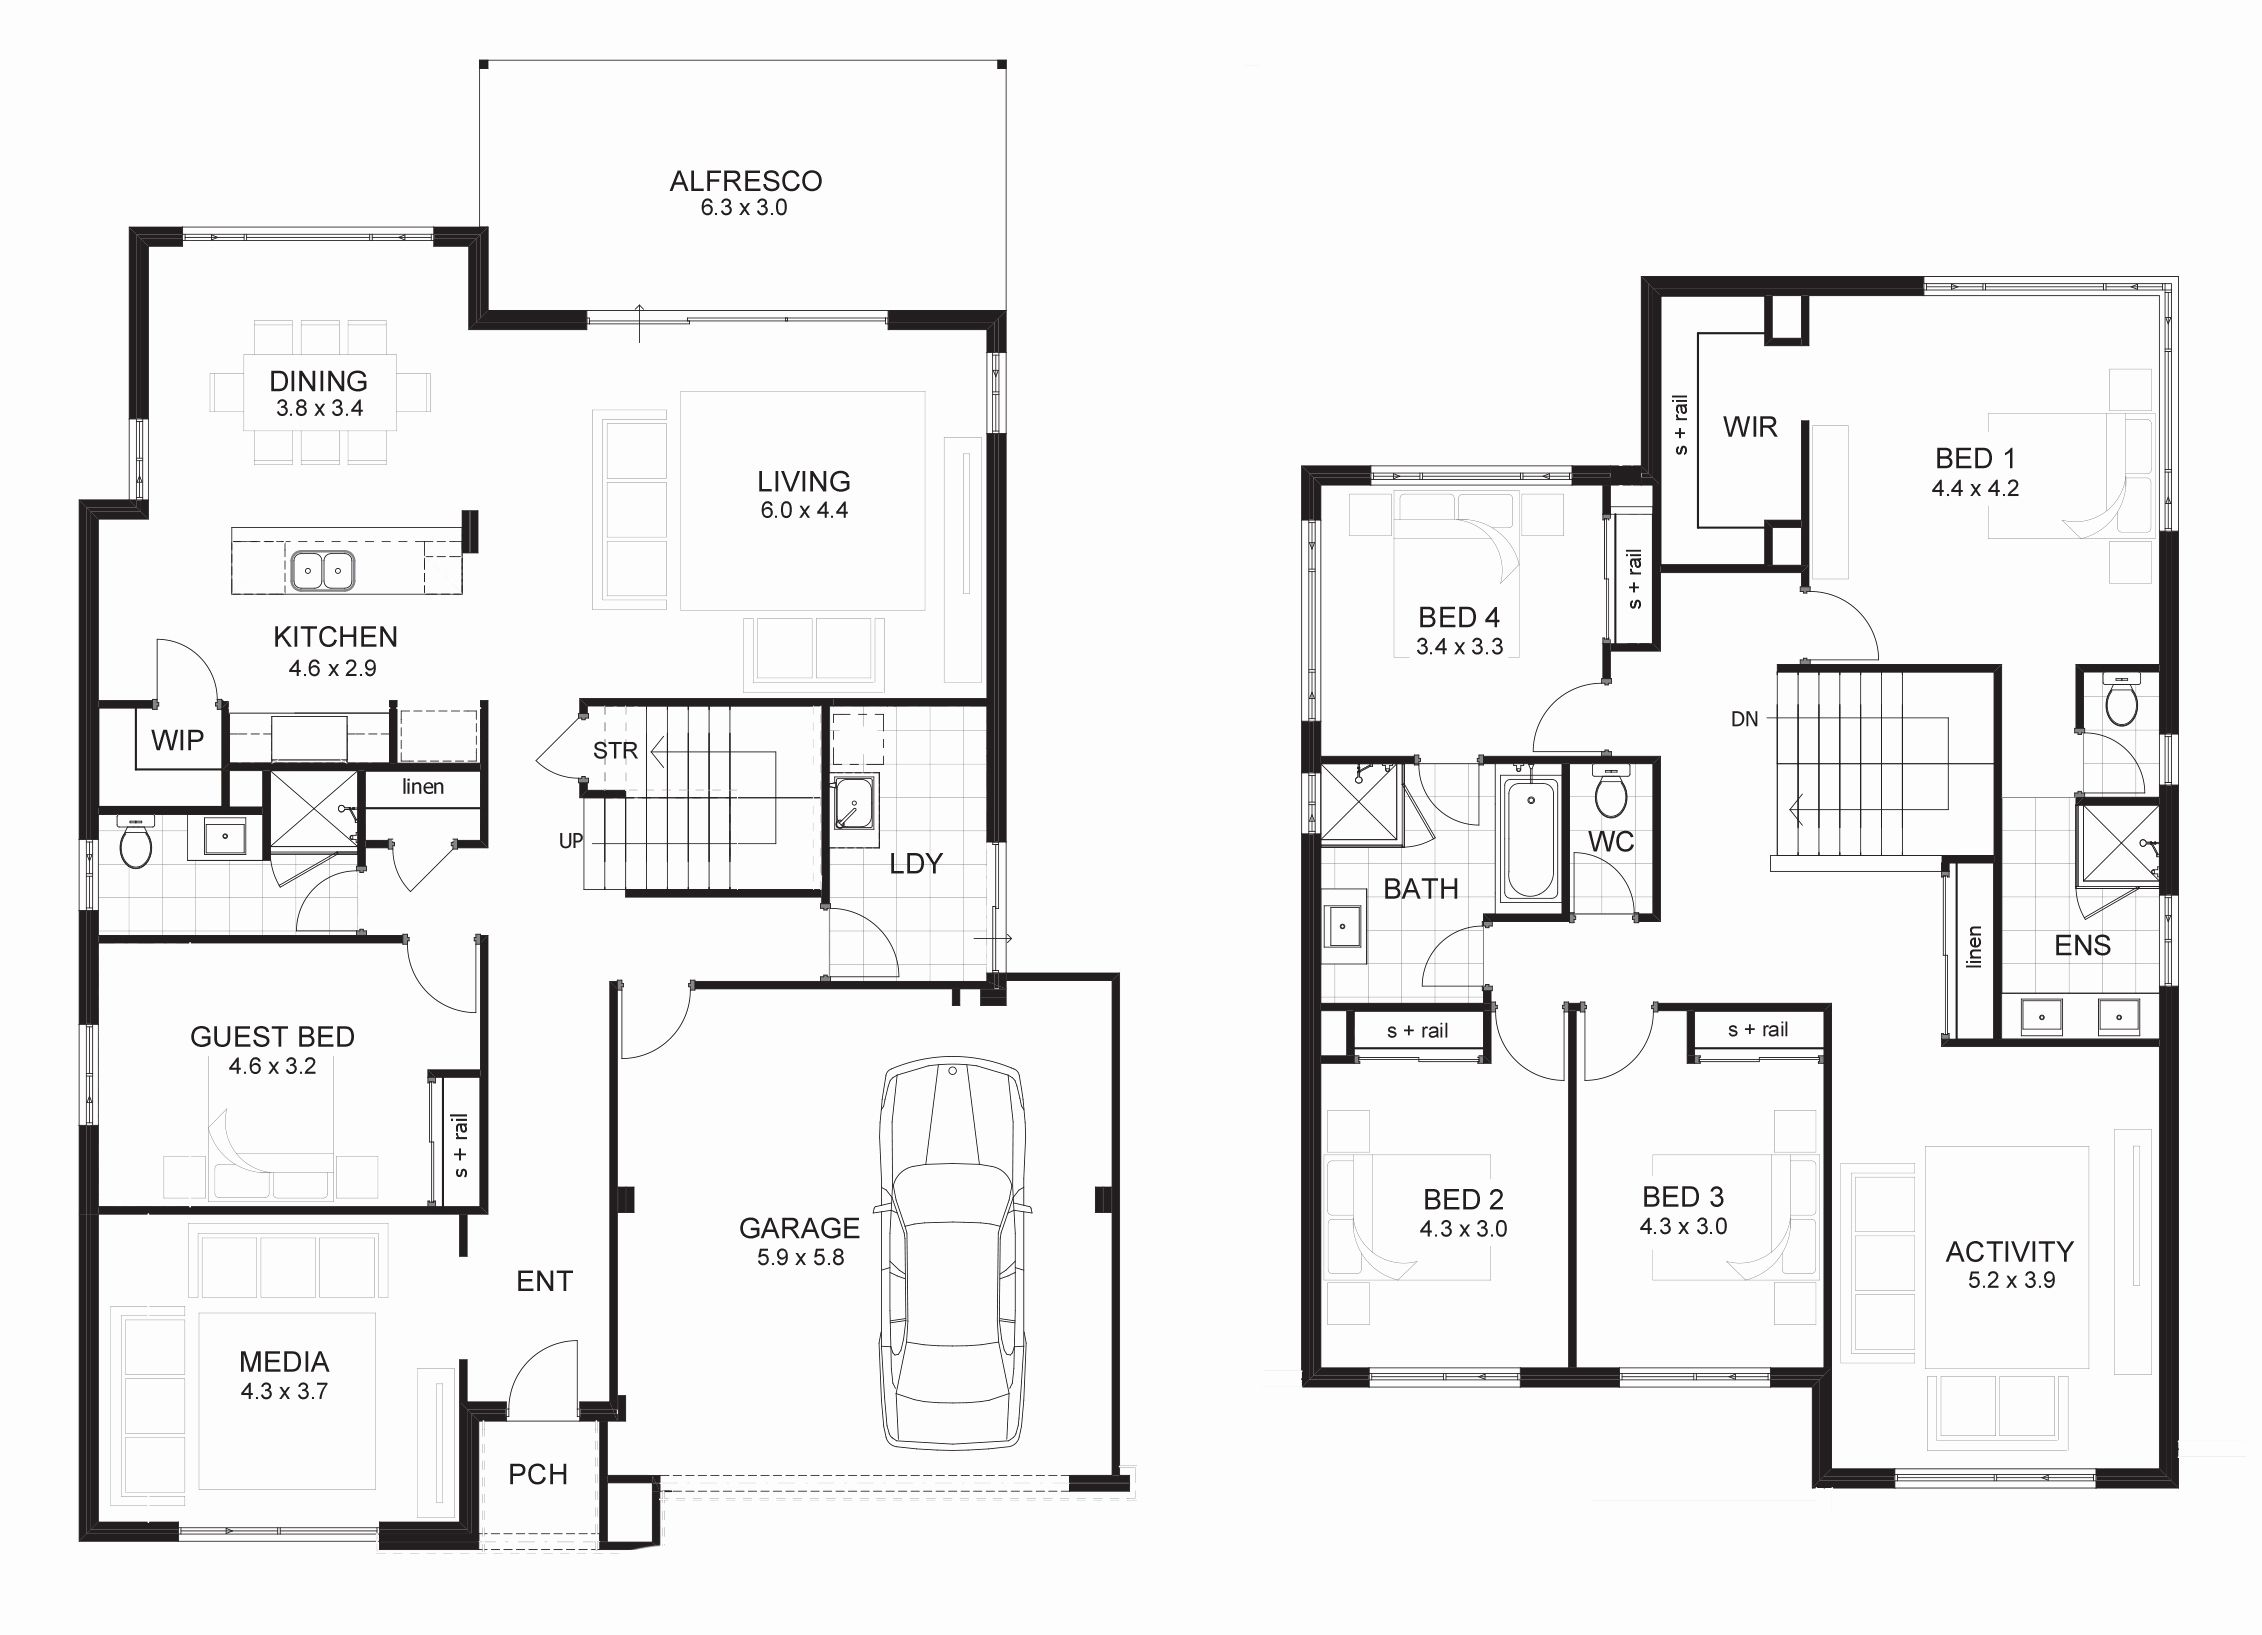 townhouse apartment layouts Google Search Two bedroom